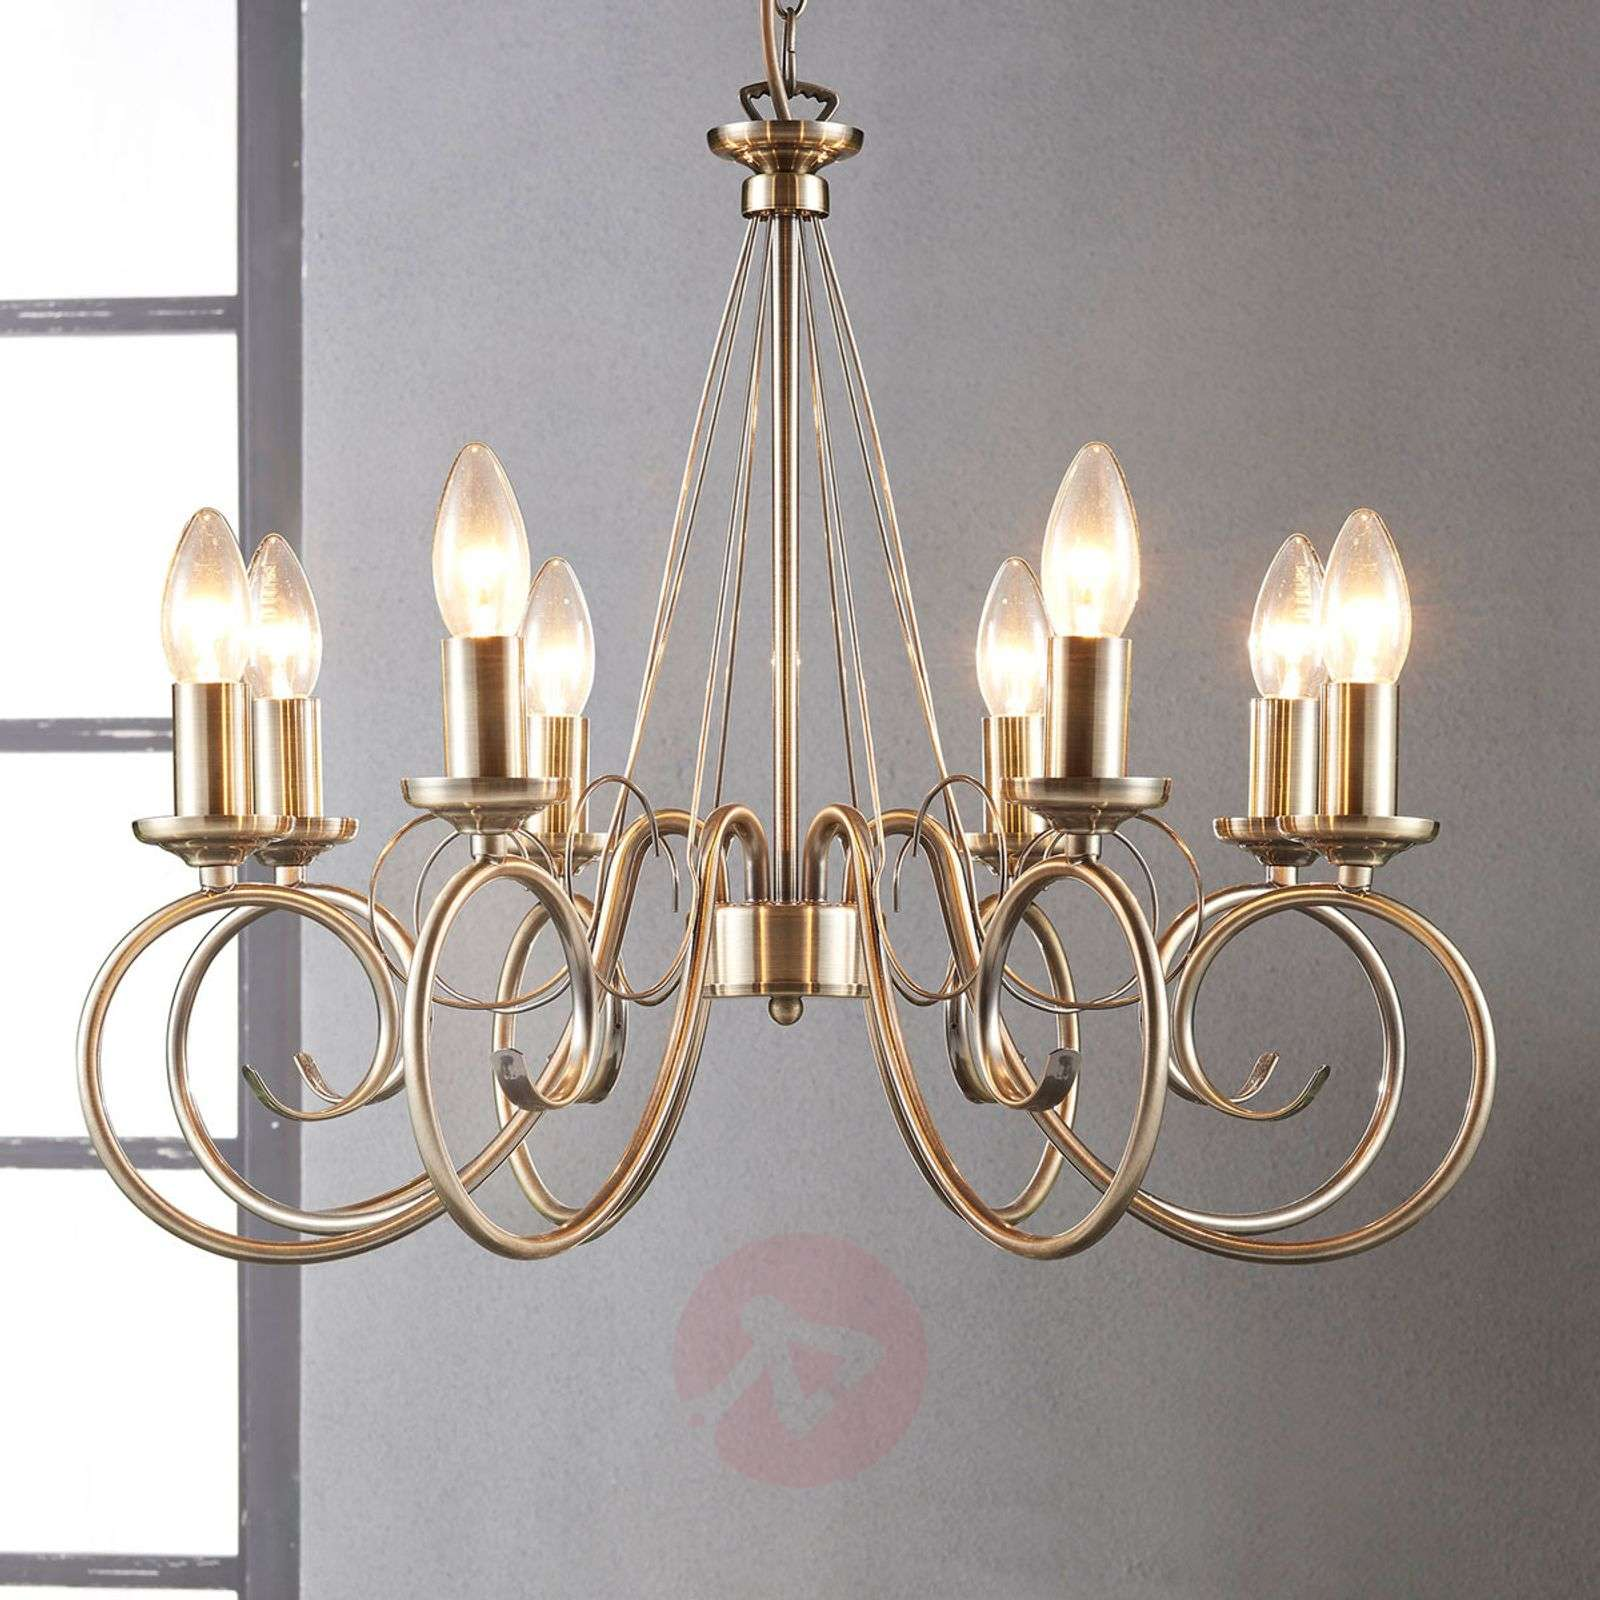 8 Bulb Marnia Chandelier In Antique Brass 9621016 01